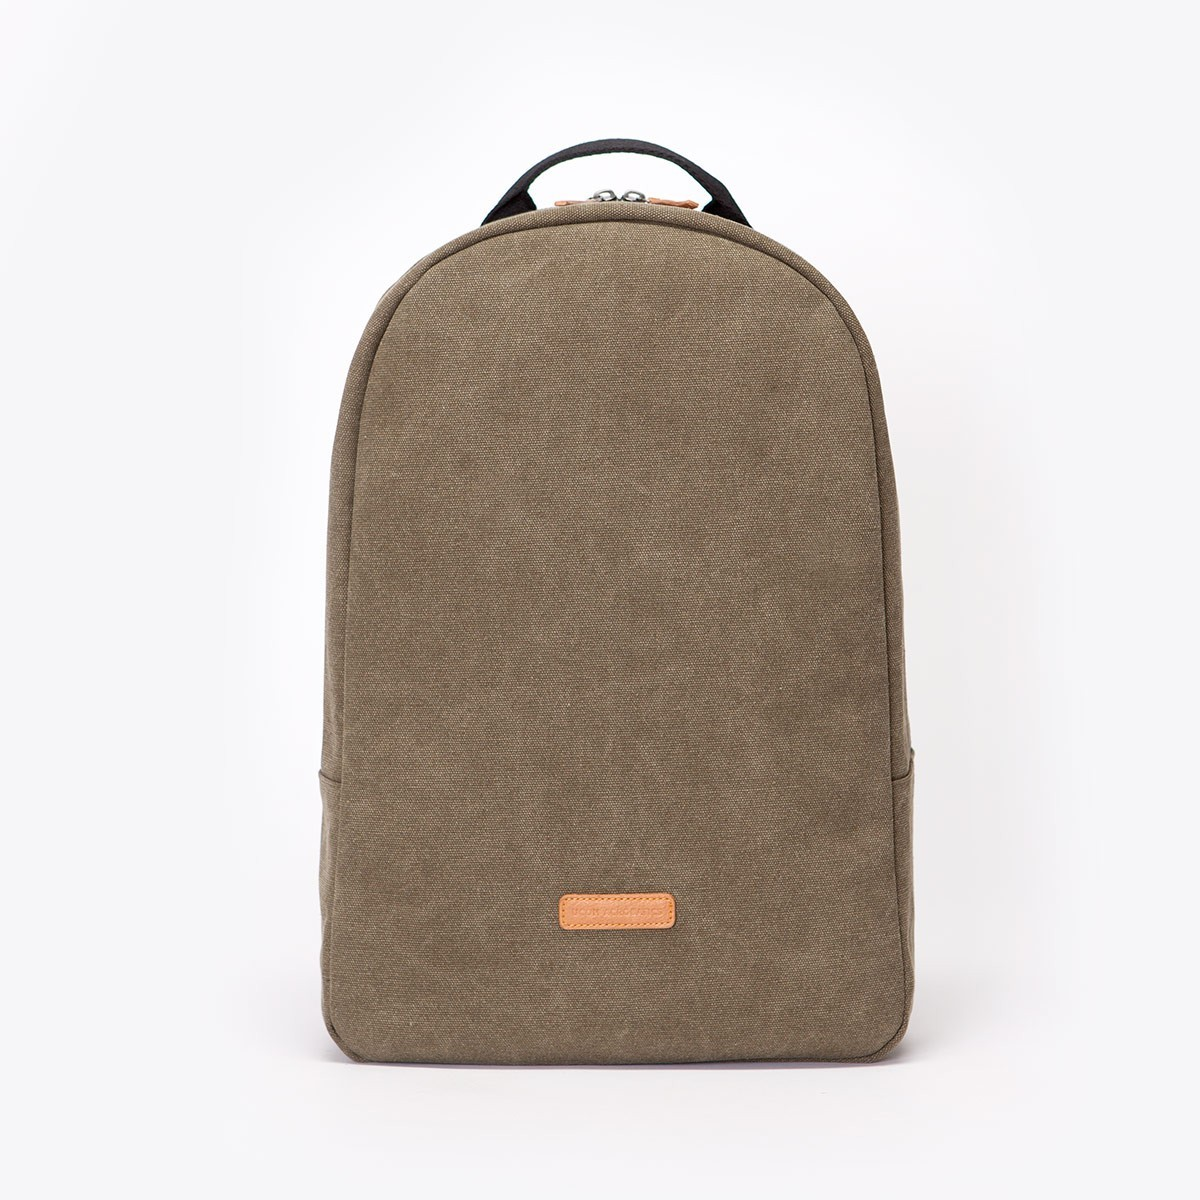 ua_marvin-backpack_original-series_olive_01.jpg